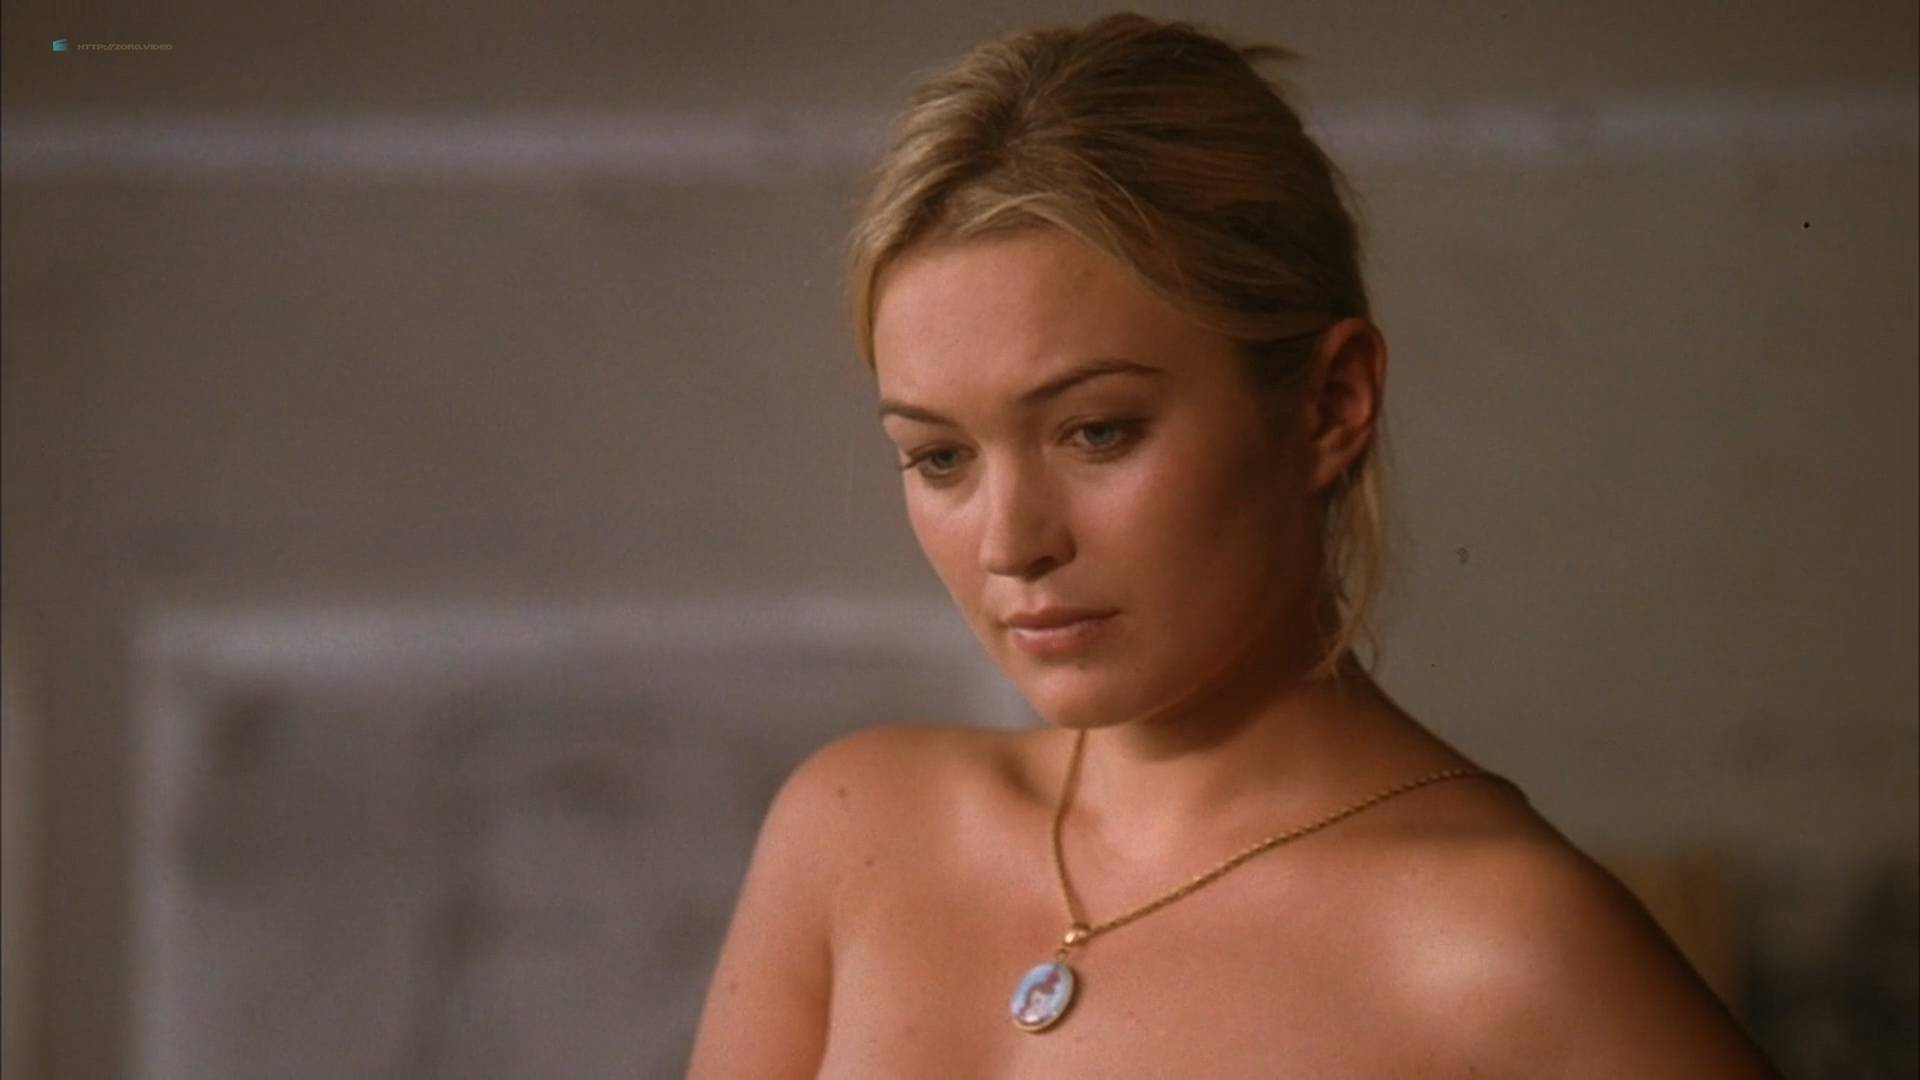 Sophia Myles nude butt and topless - Art School Confidential (2006) HD 1080p Web (7)